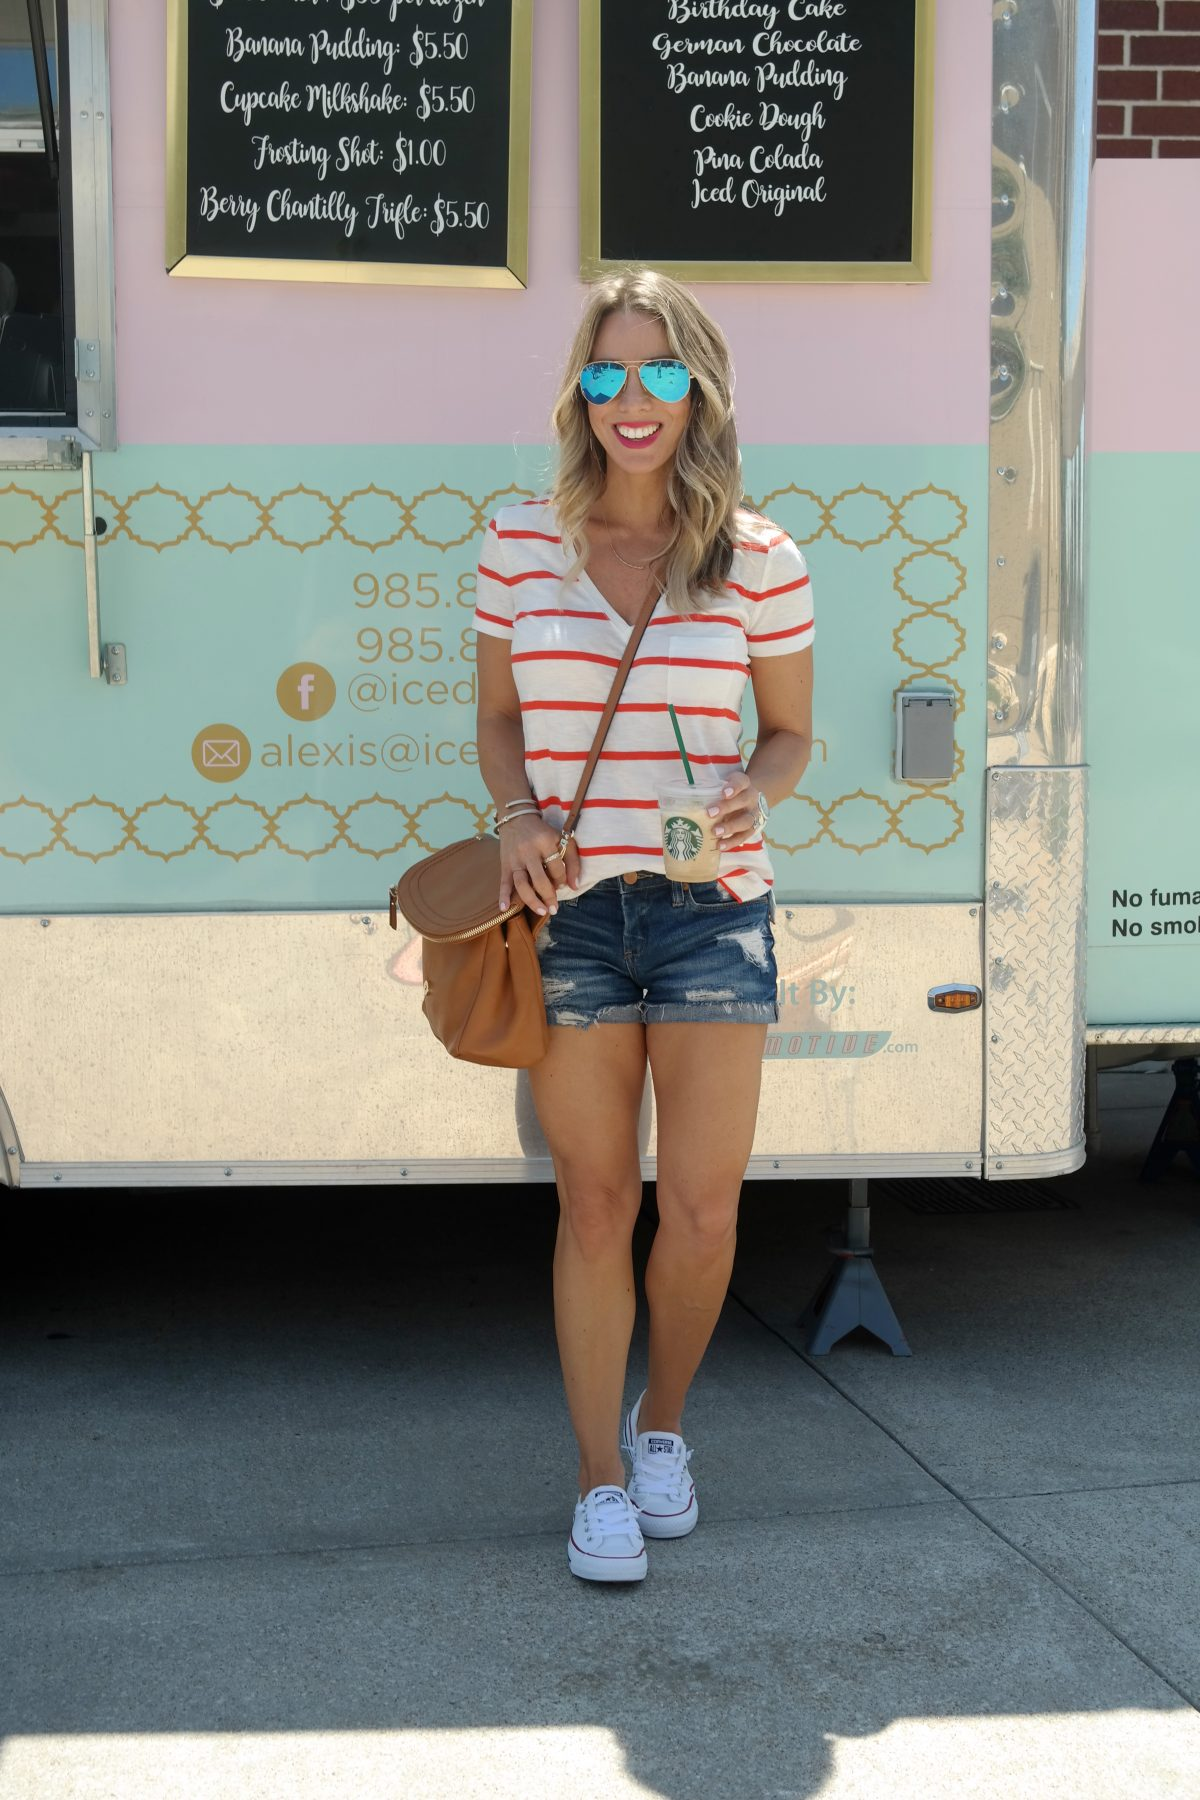 Spring outfit - Striped v-neck t shirt and jean shorts